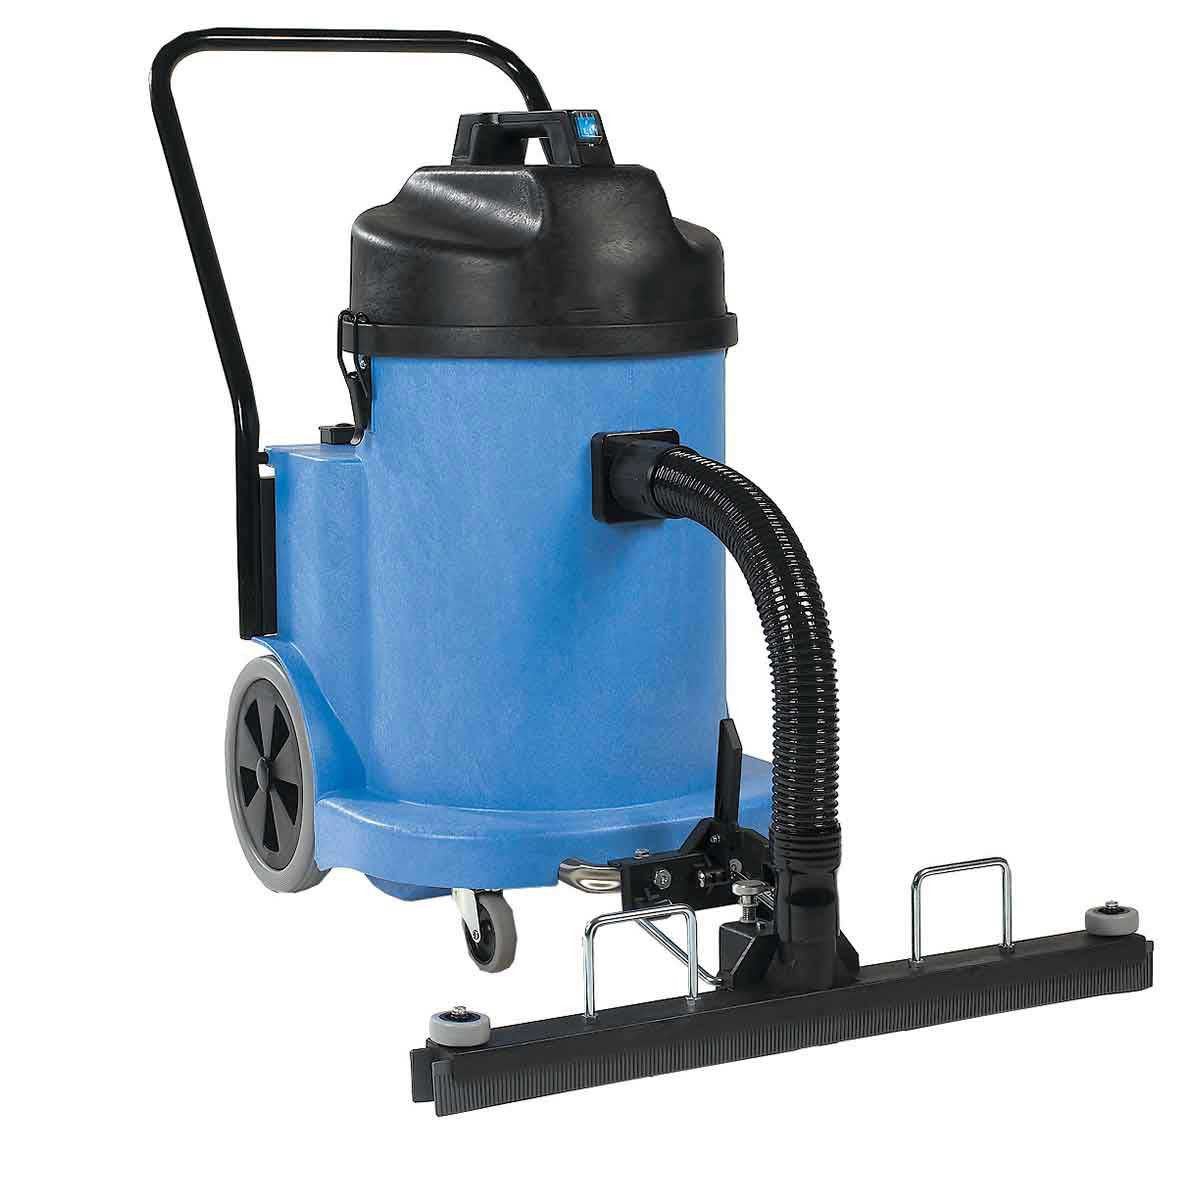 Nacecare Wet Slurry Vac